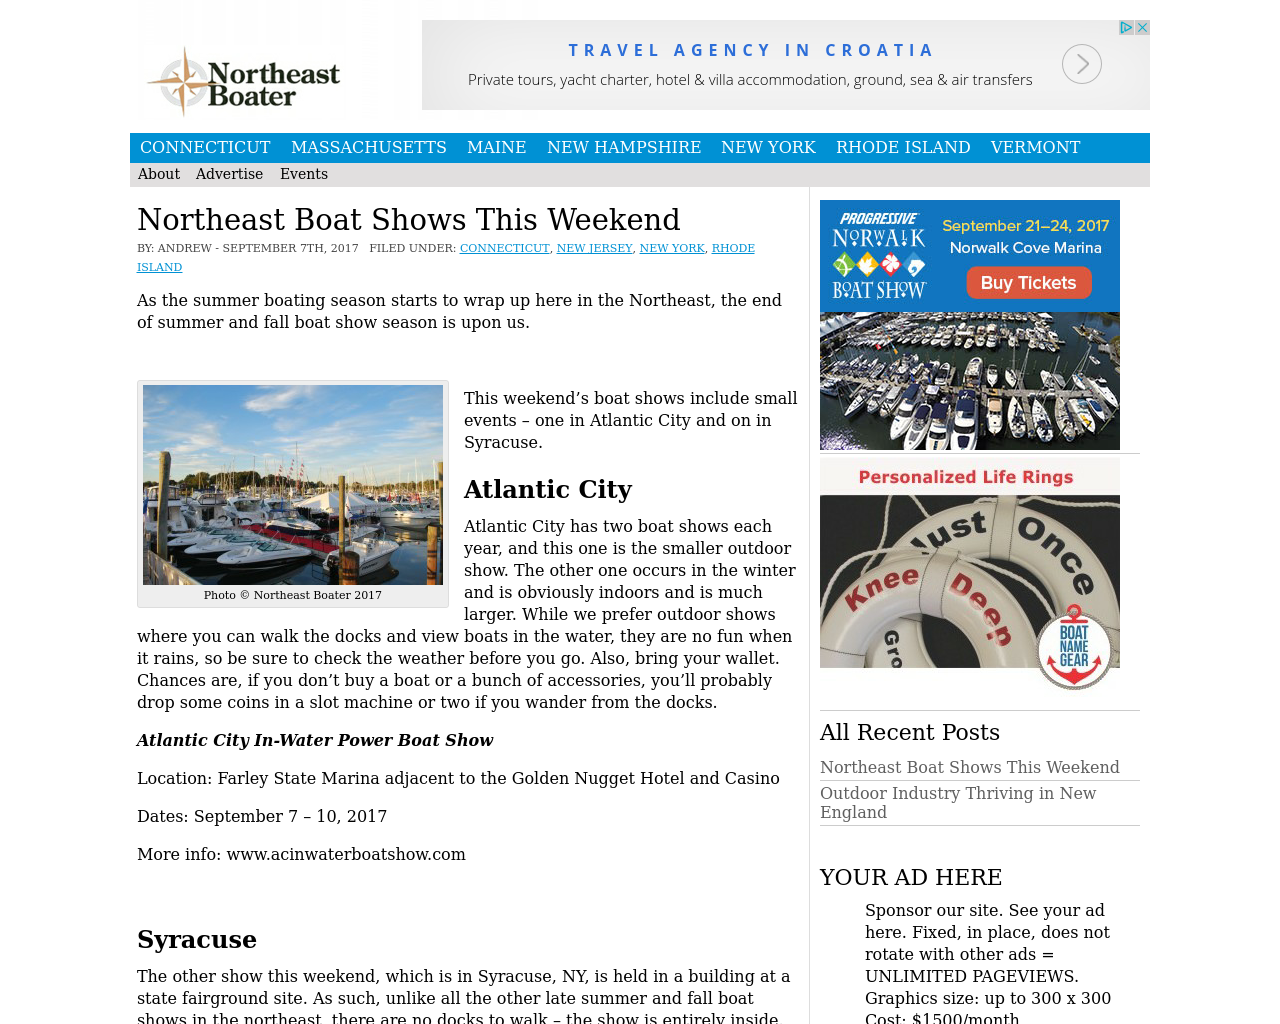 Northeast-Boater-Advertising-Reviews-Pricing